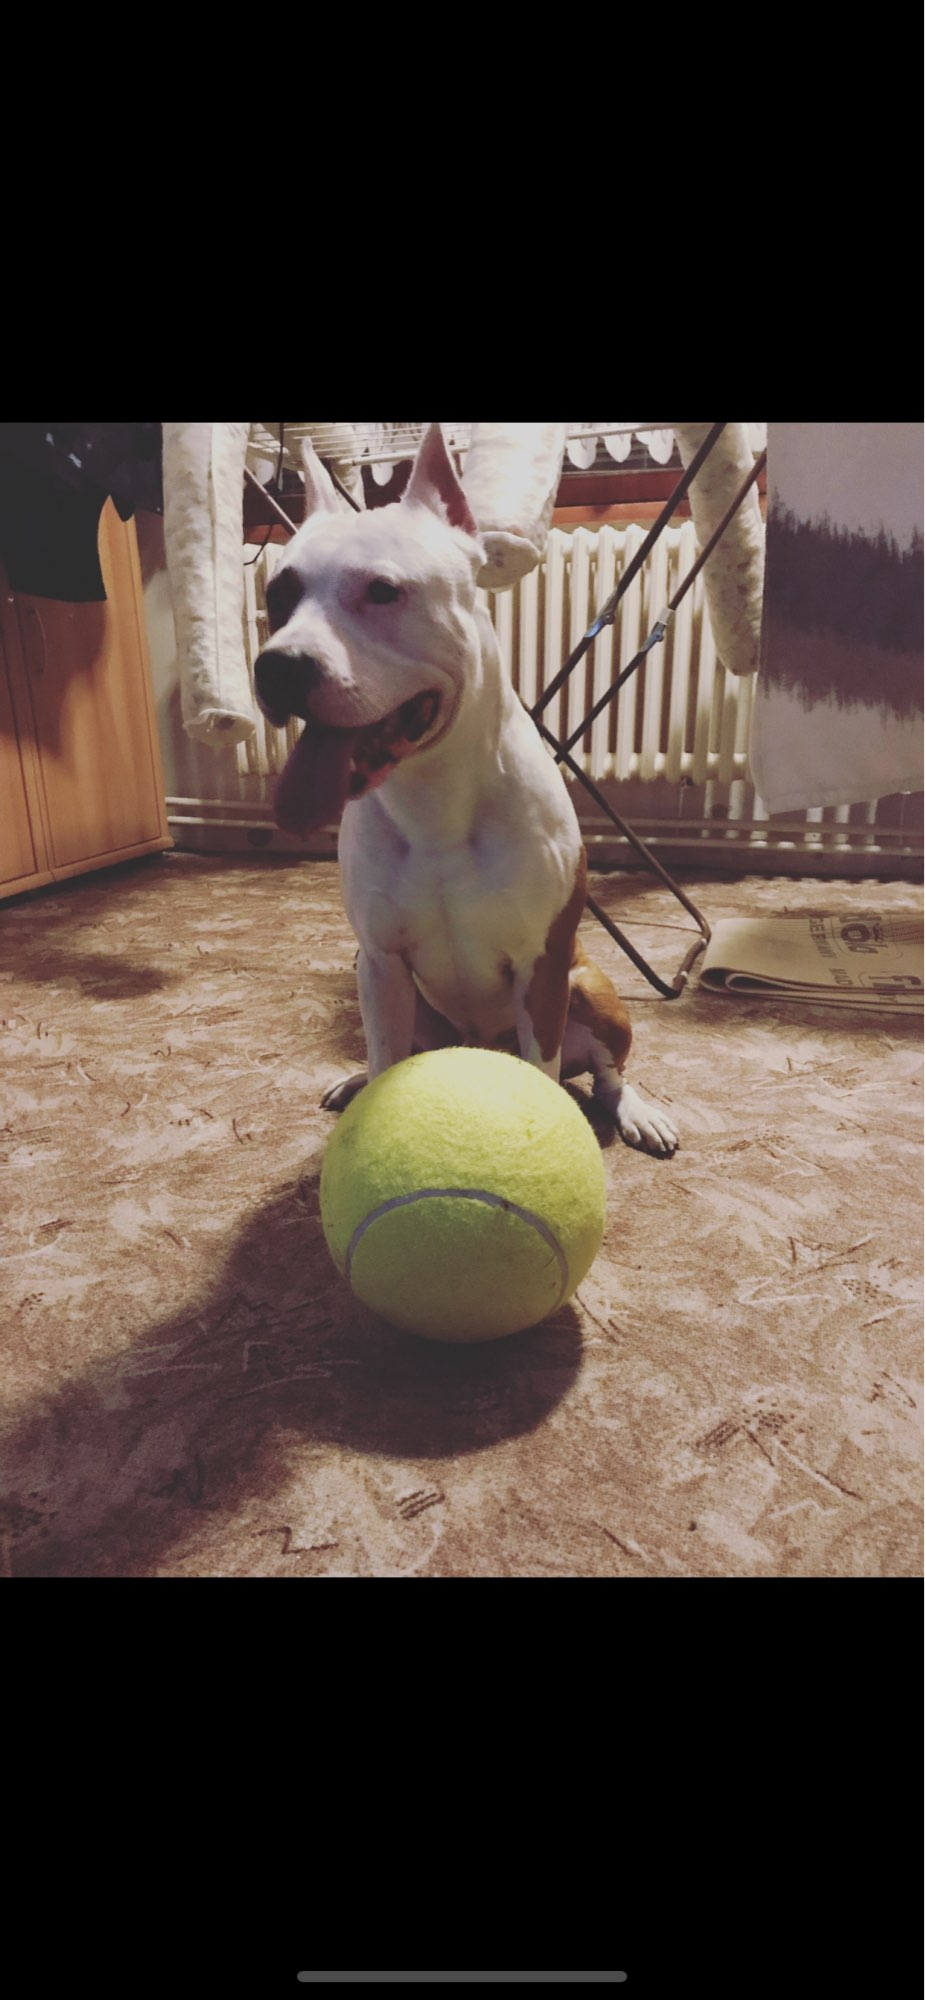 Giant Tennis Ball For Dogs photo review